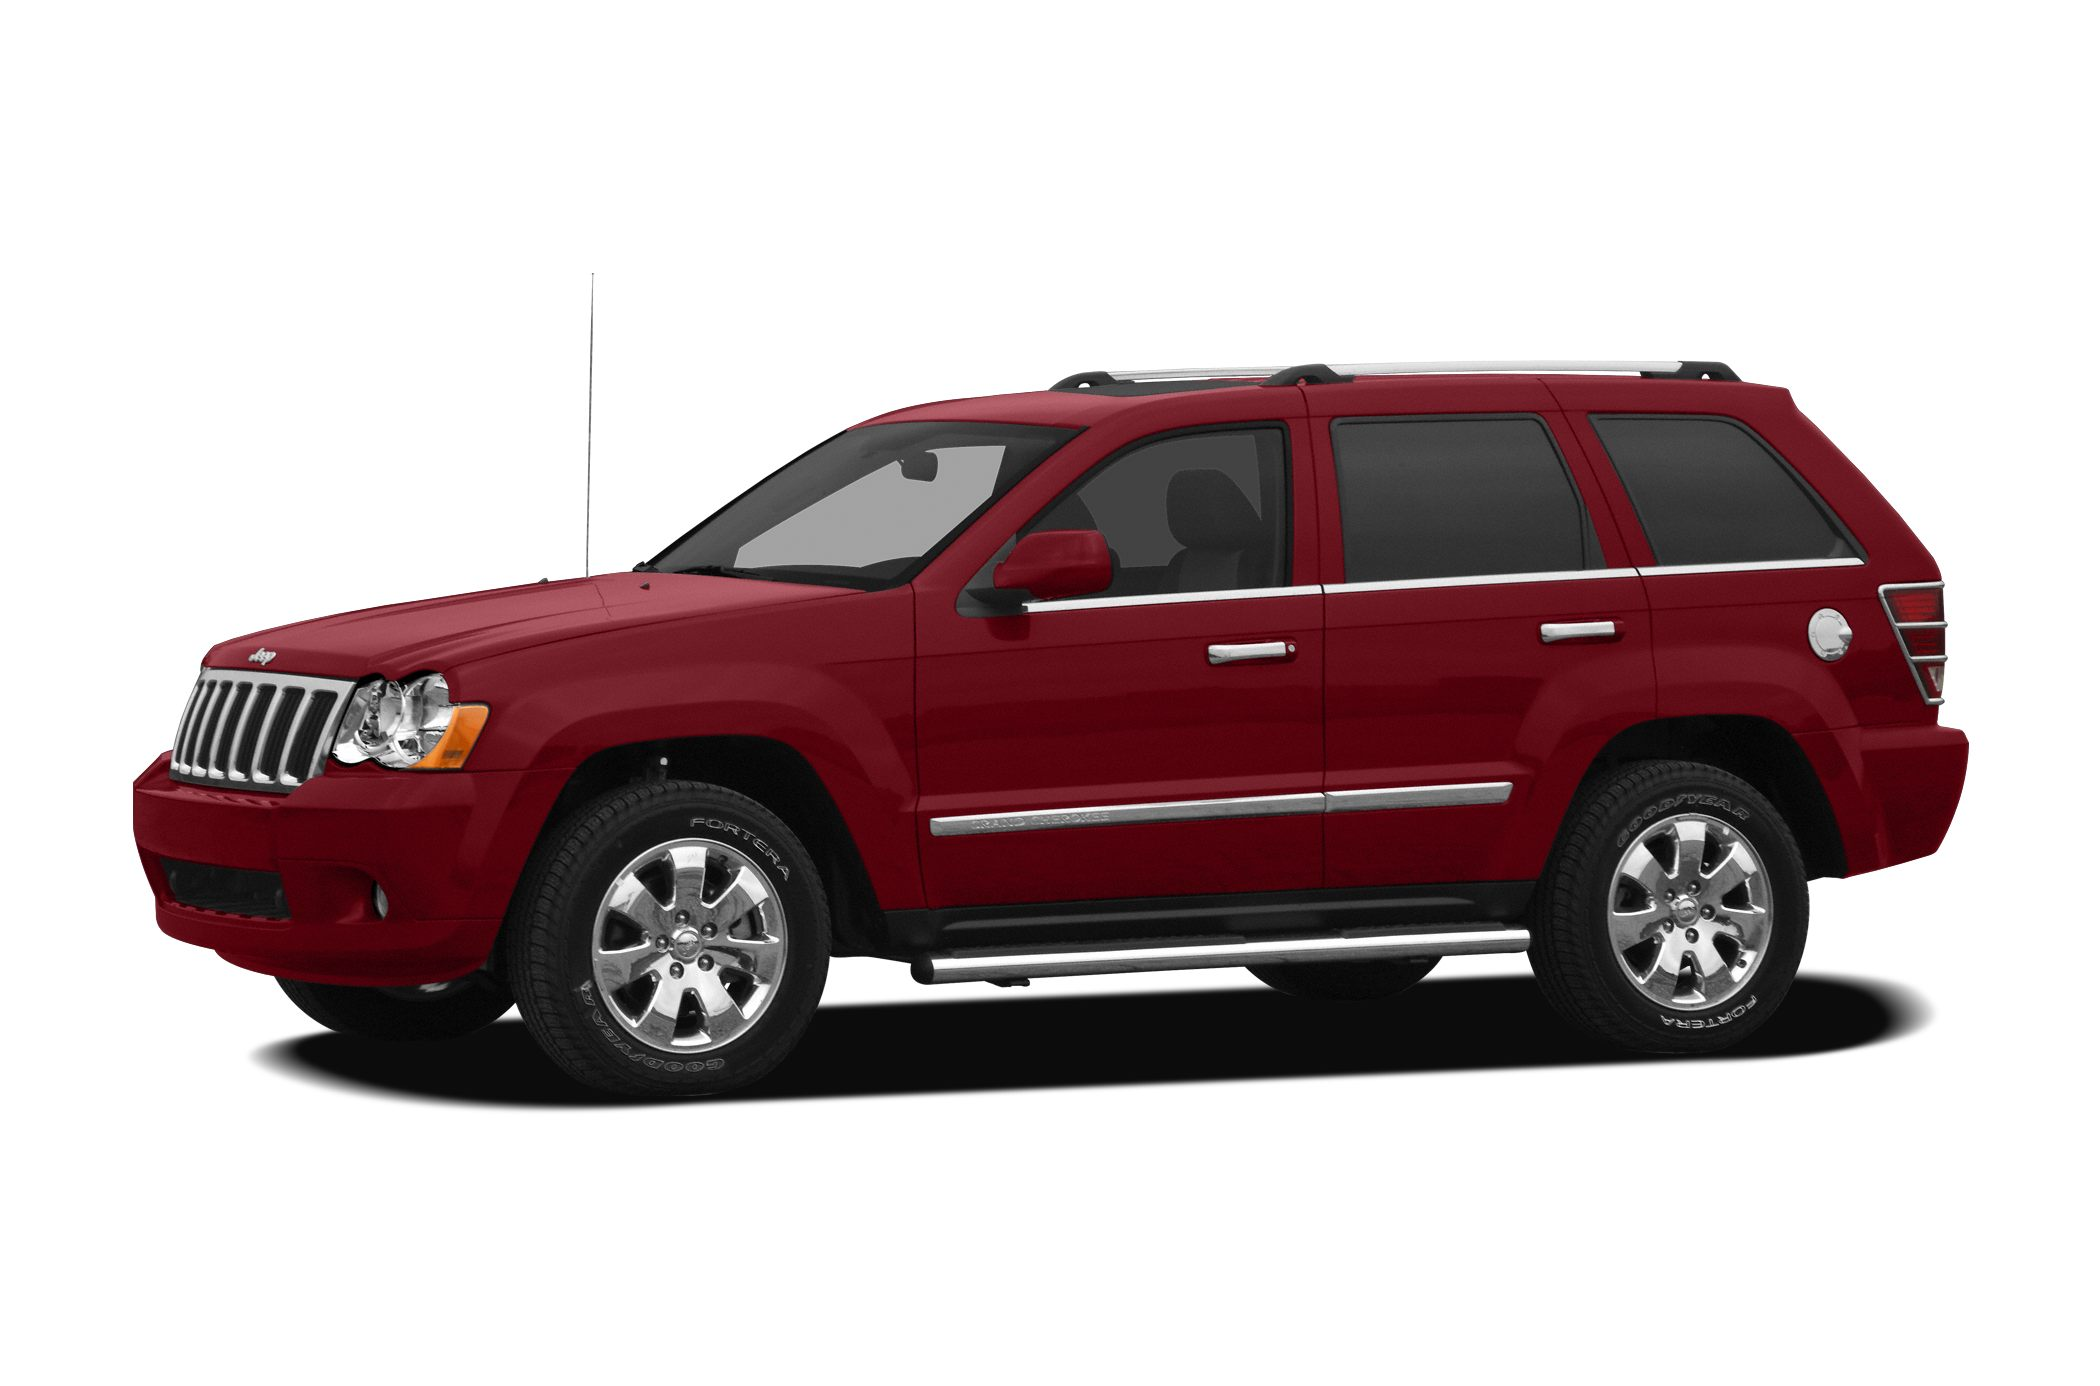 2008 Jeep Grand Cherokee Laredo SUV for sale in Nixa for $11,958 with 98,818 miles.